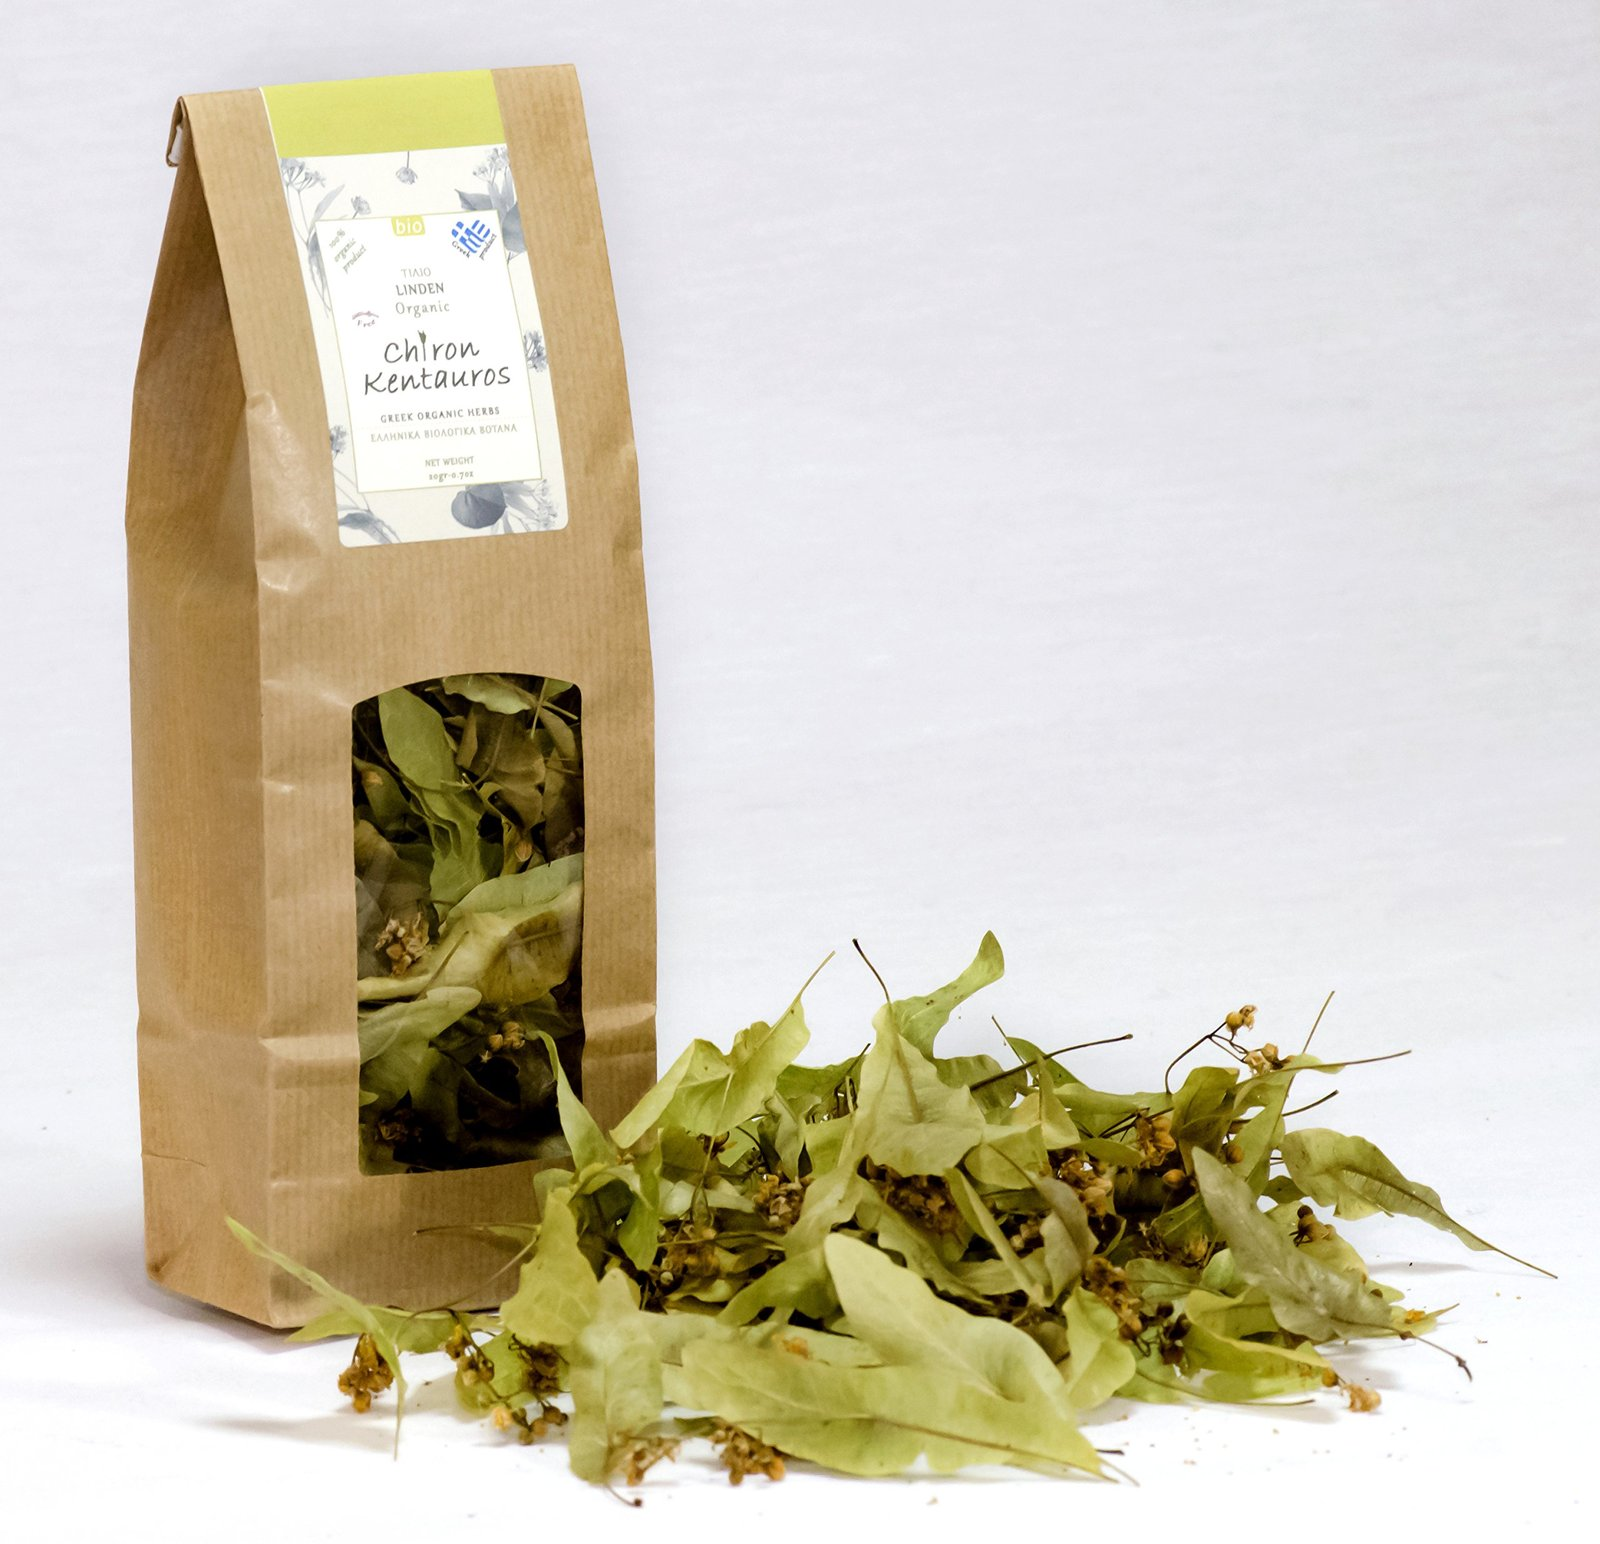 Primary image for Bio Organic Linden / Tilia Herb from Mount Pelion Greece - GMO / Caffeine Free